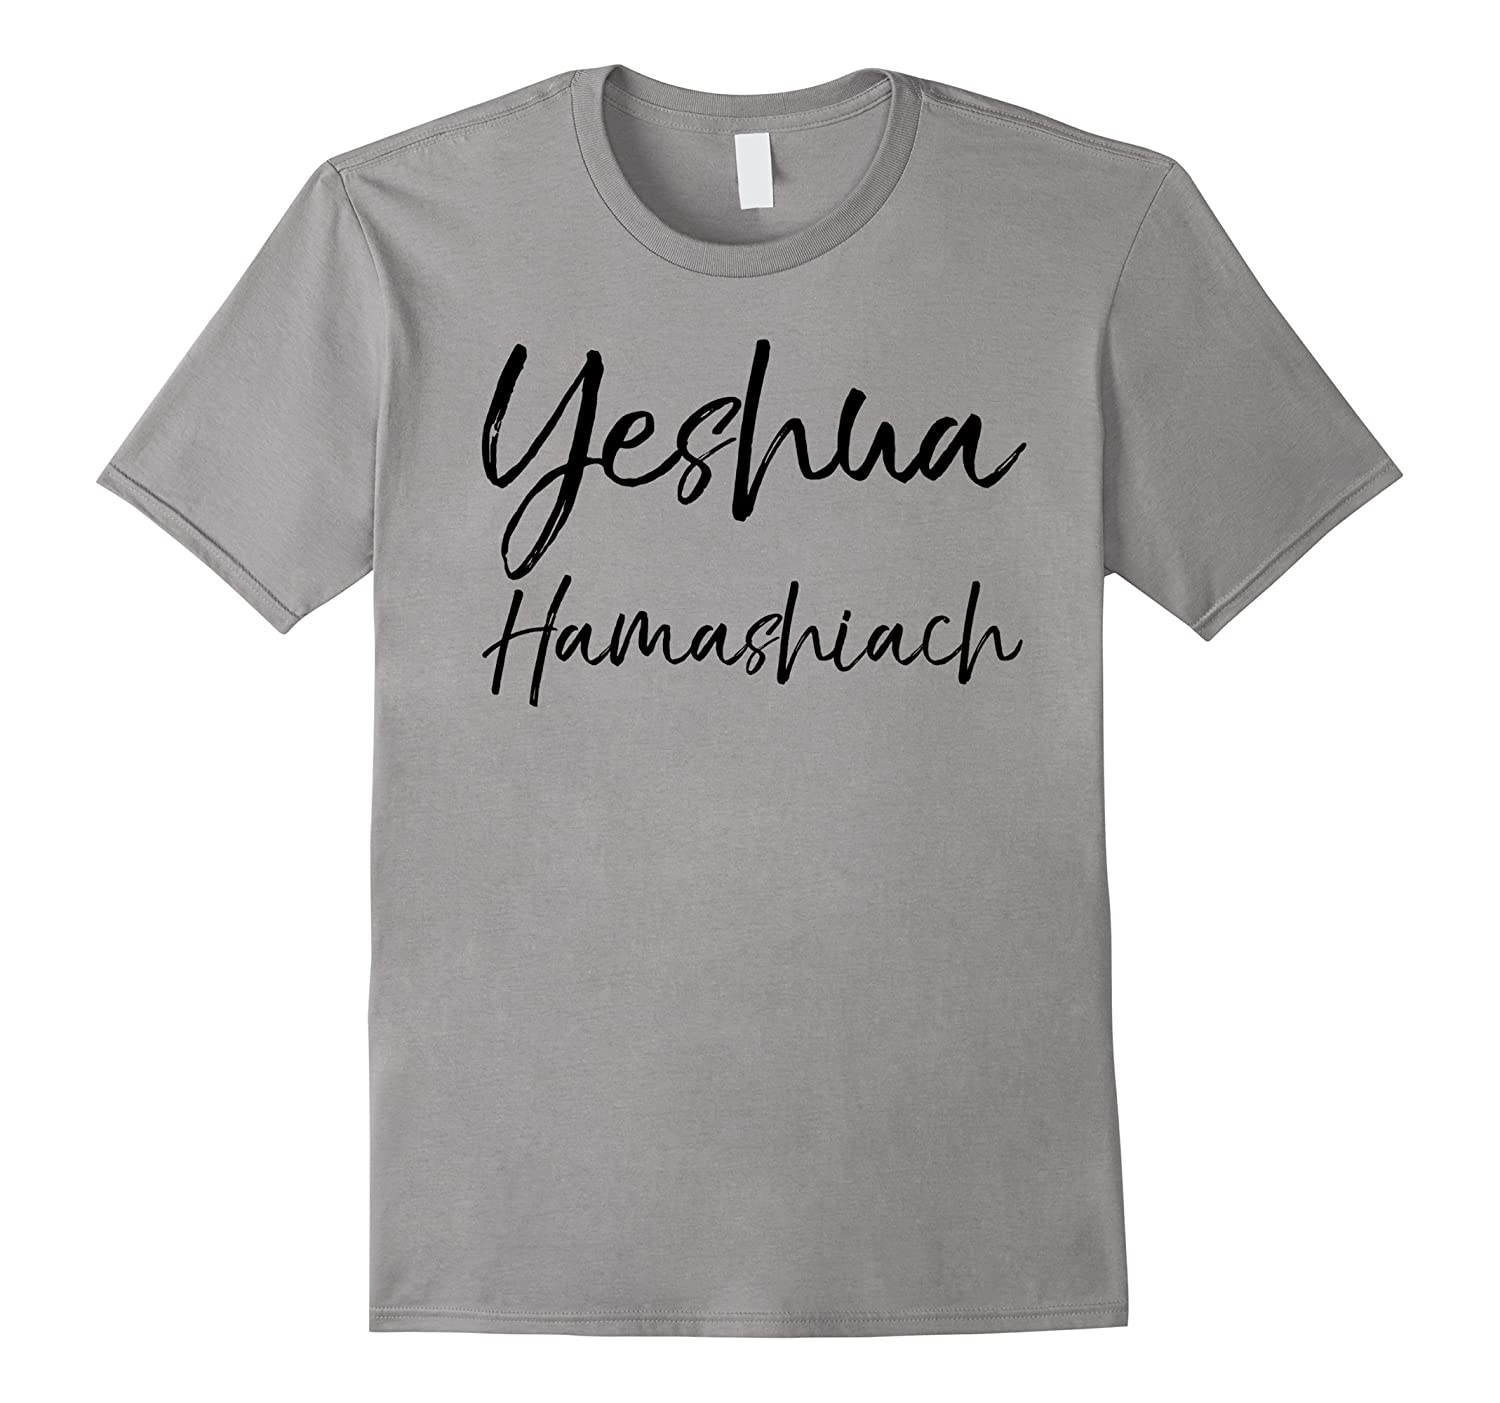 Yeshua Hamashiach Shirt Hebrew Name of Jesus Christ Tee-FL